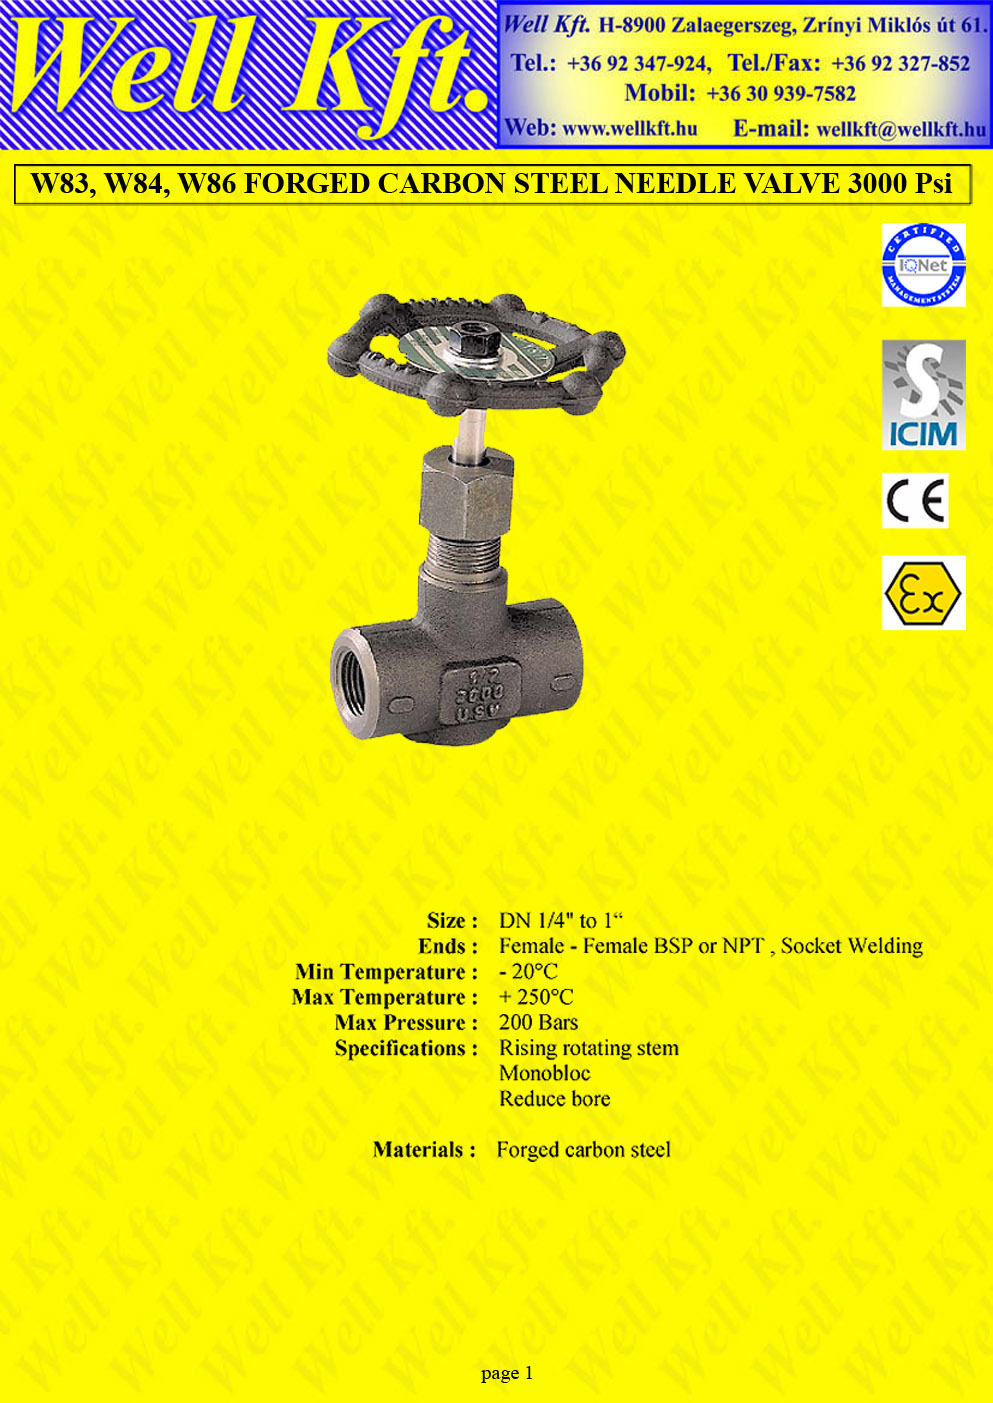 Needle valve forged carbon steel PN 200  (1.)